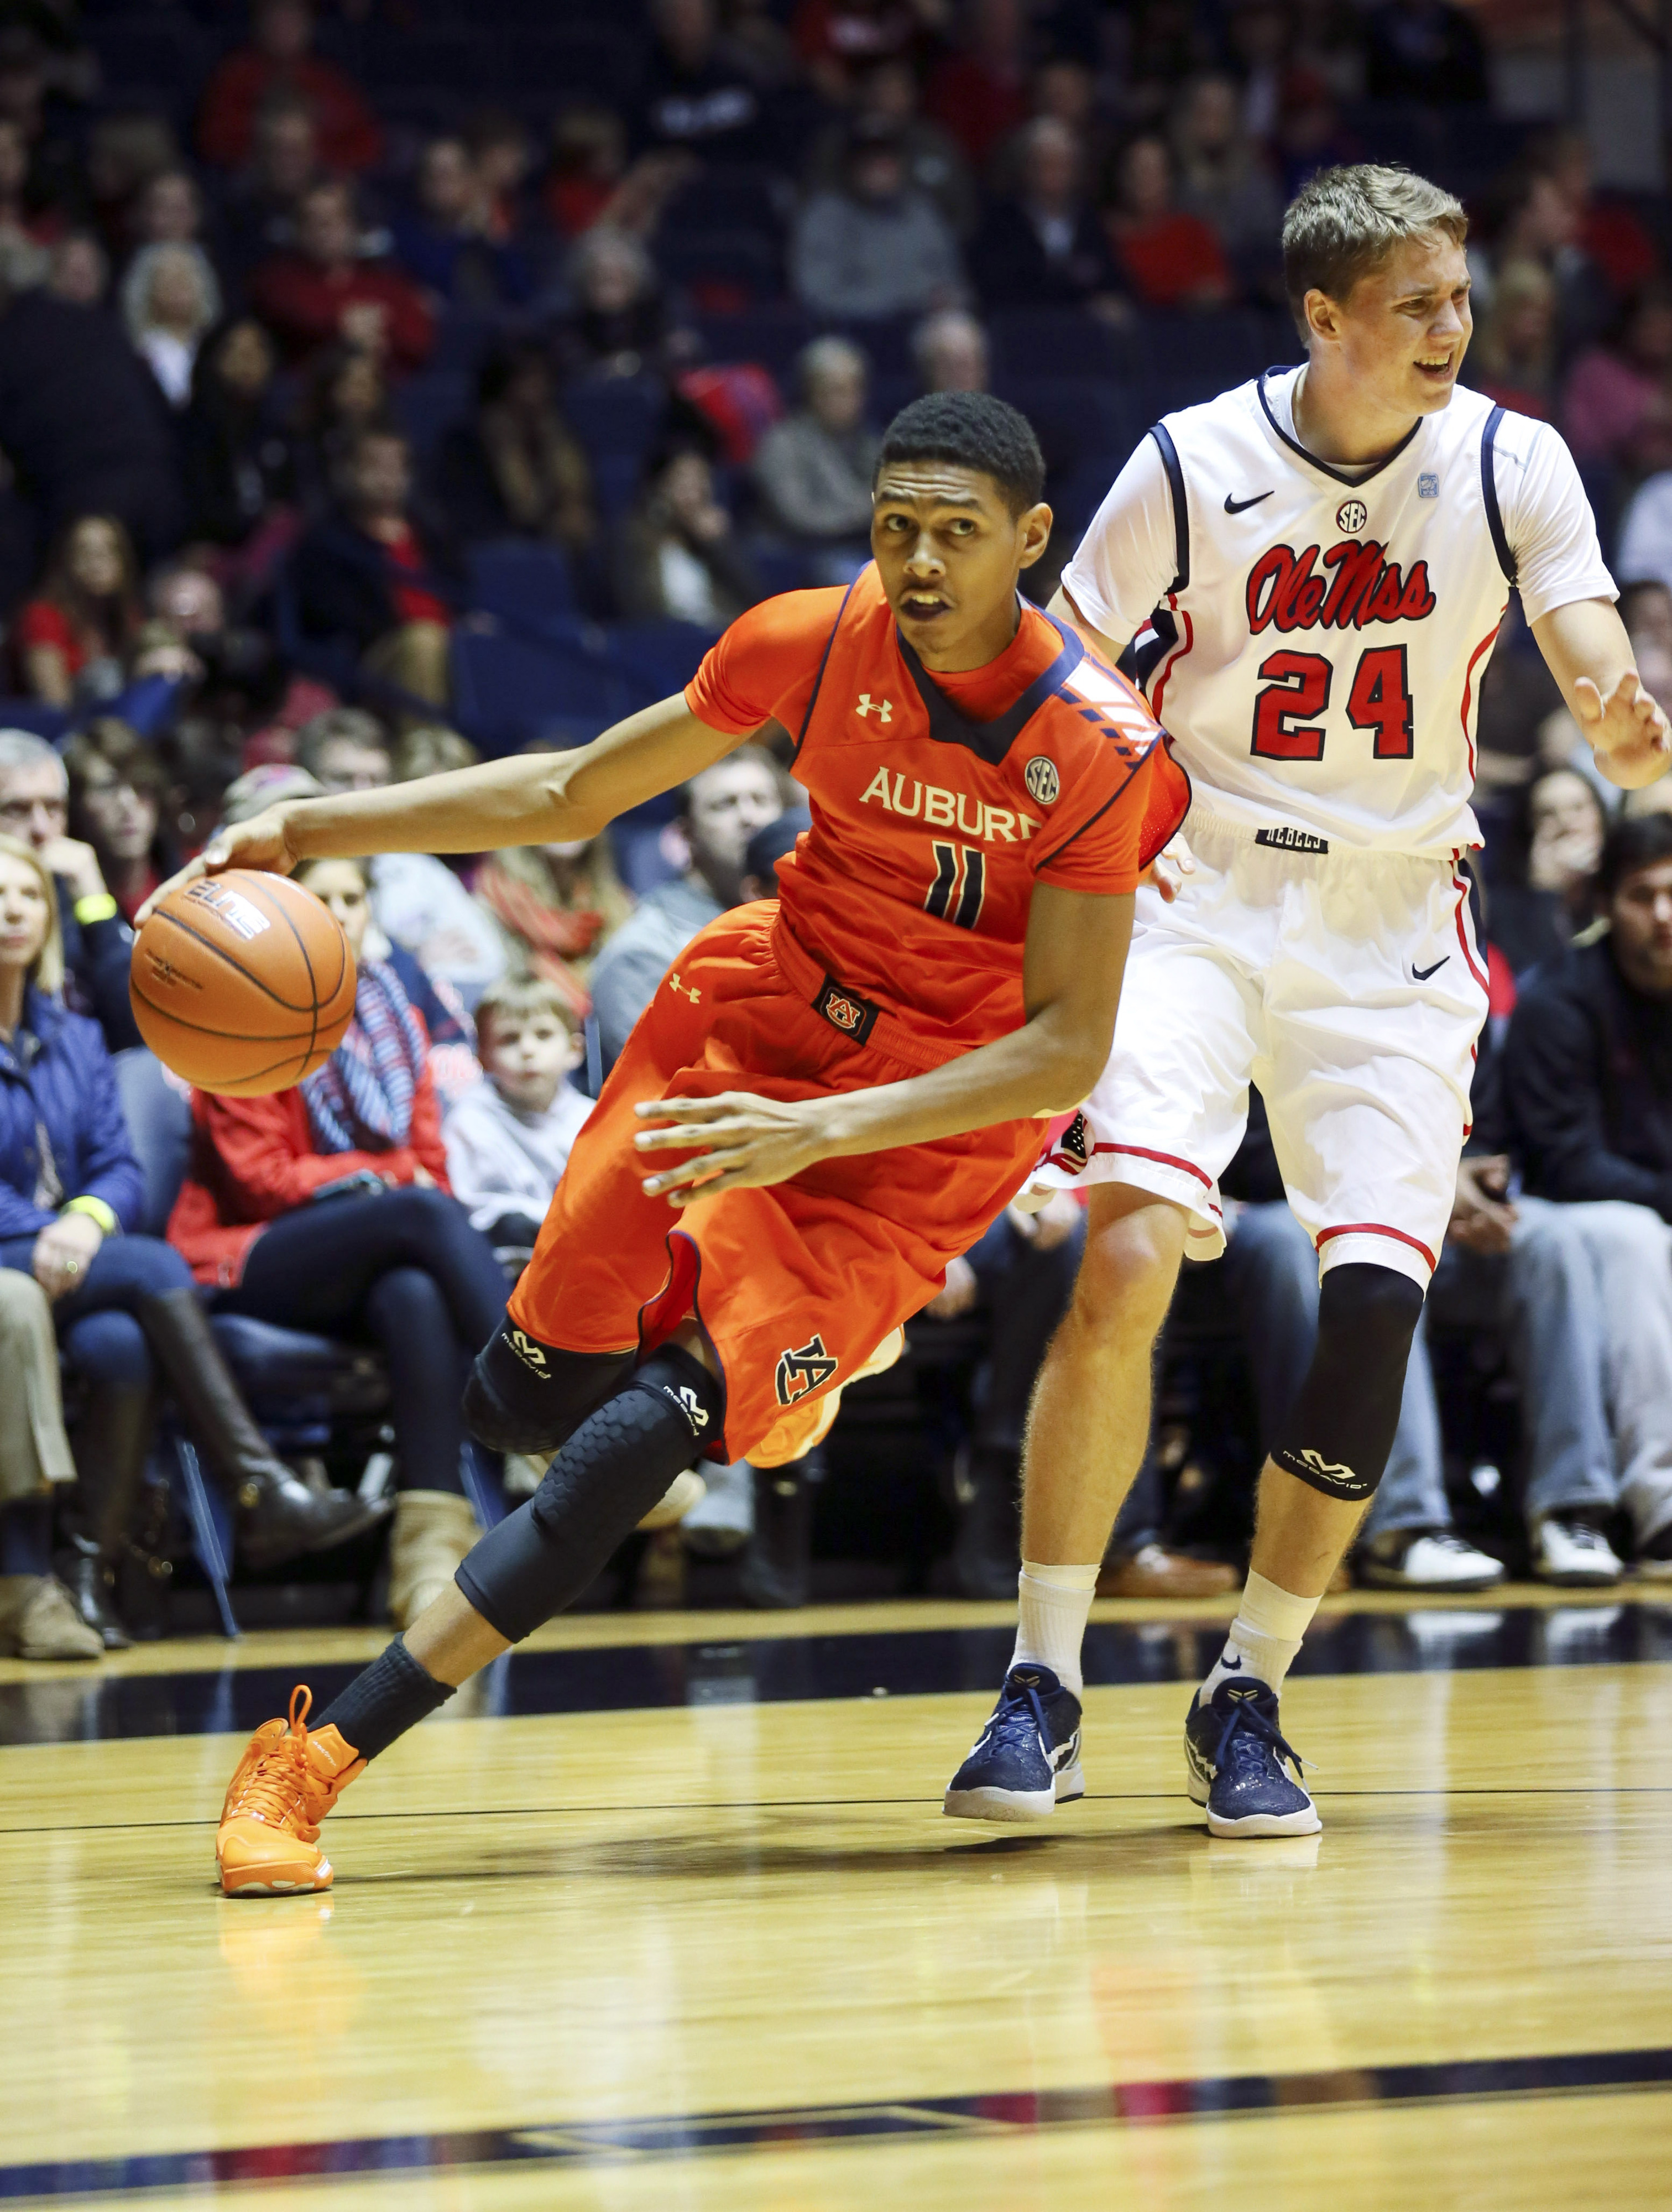 Auburn's Dion Wade will transfer to Miami.